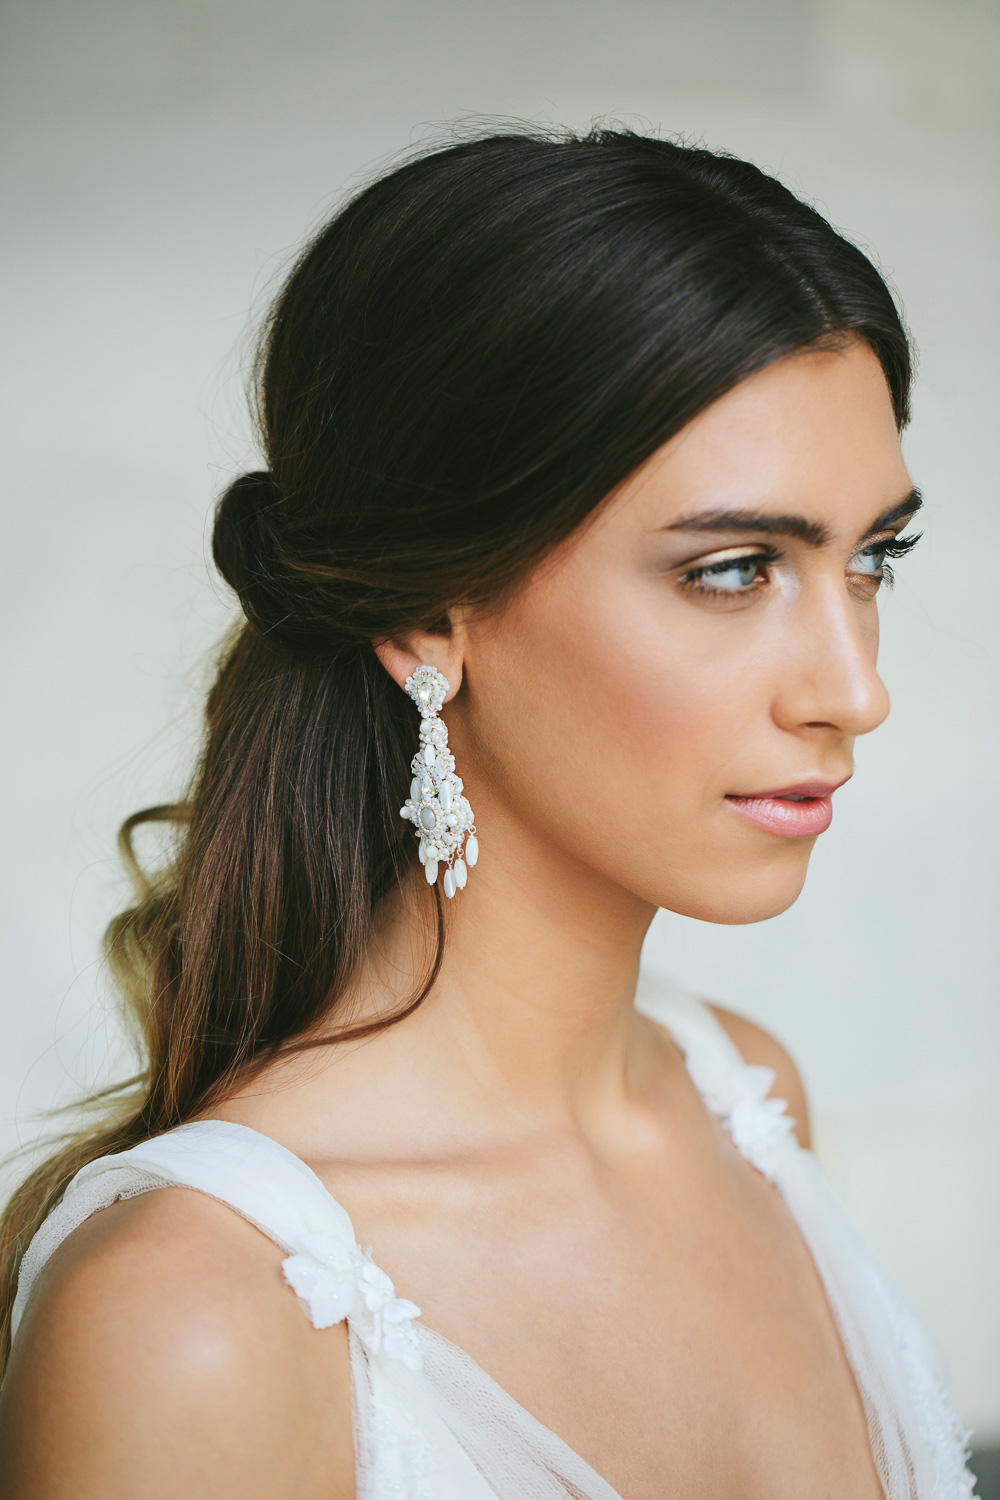 Pearl Wedding Chandelier Earrings  Boho Teardrop Bridal Earrings — Edera  Jewelry  Couture Lace Bridal Accessories